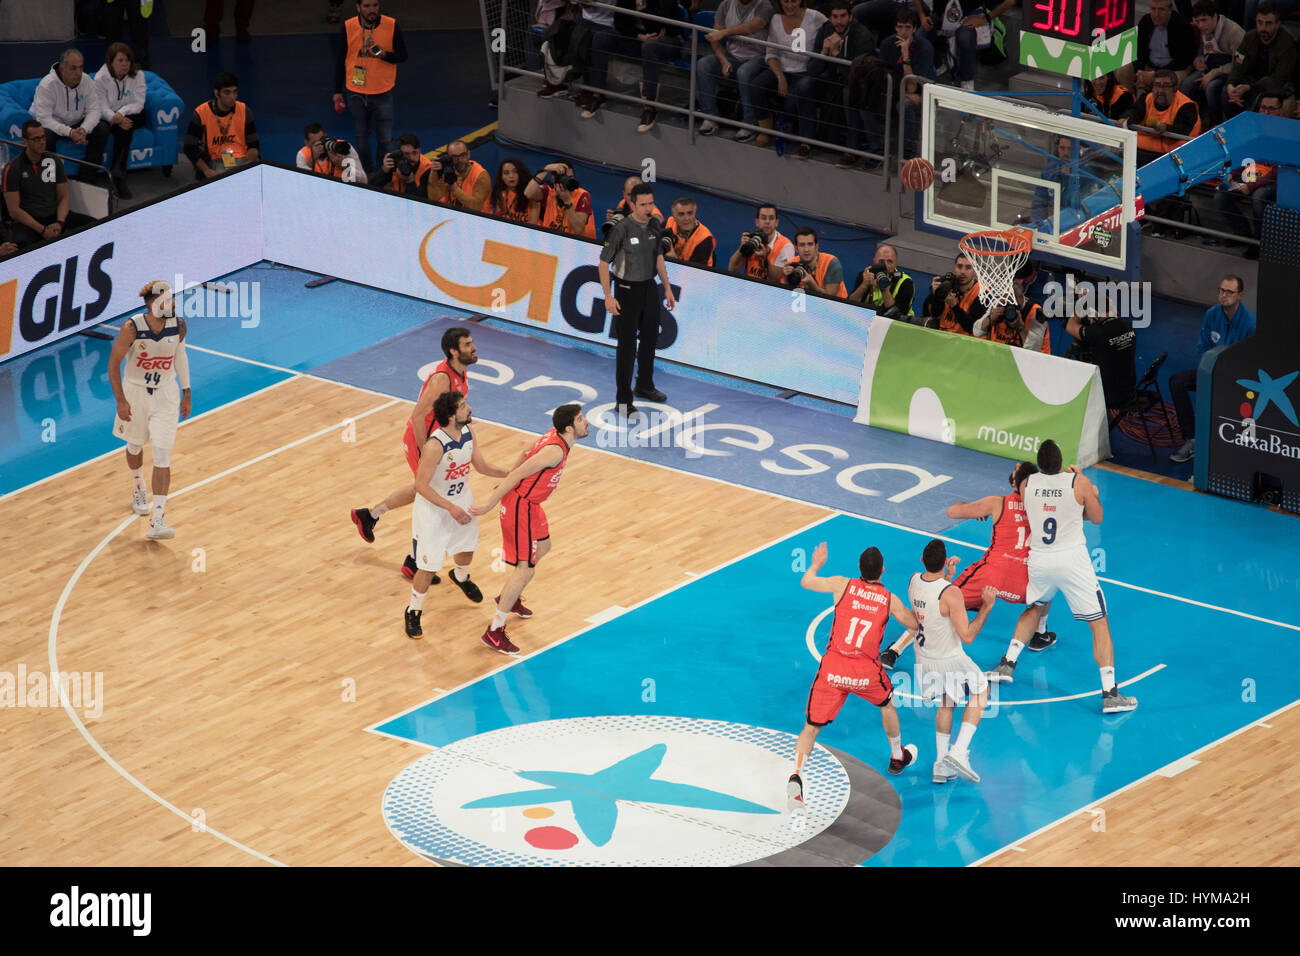 Vitoria, Spain - February 19, 2017: Some basketball players in action at Spanish Copa del rey final match between - Stock Image